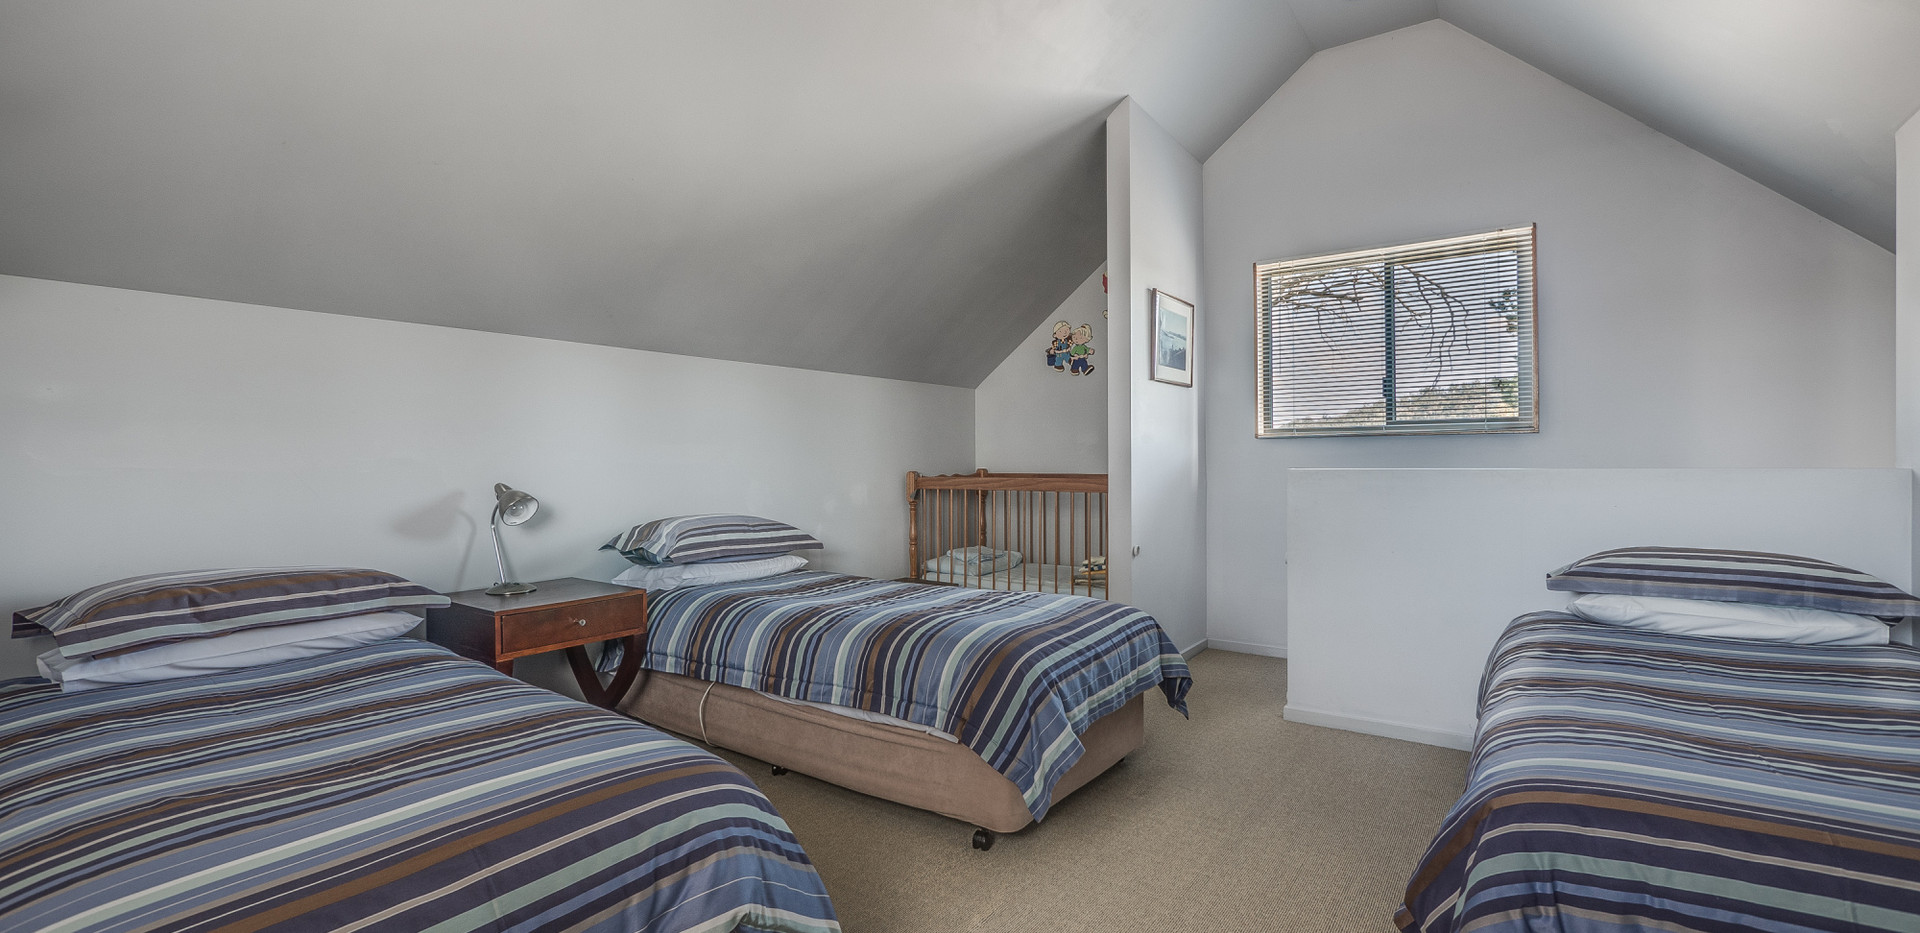 Family chalet upstairs bedroom